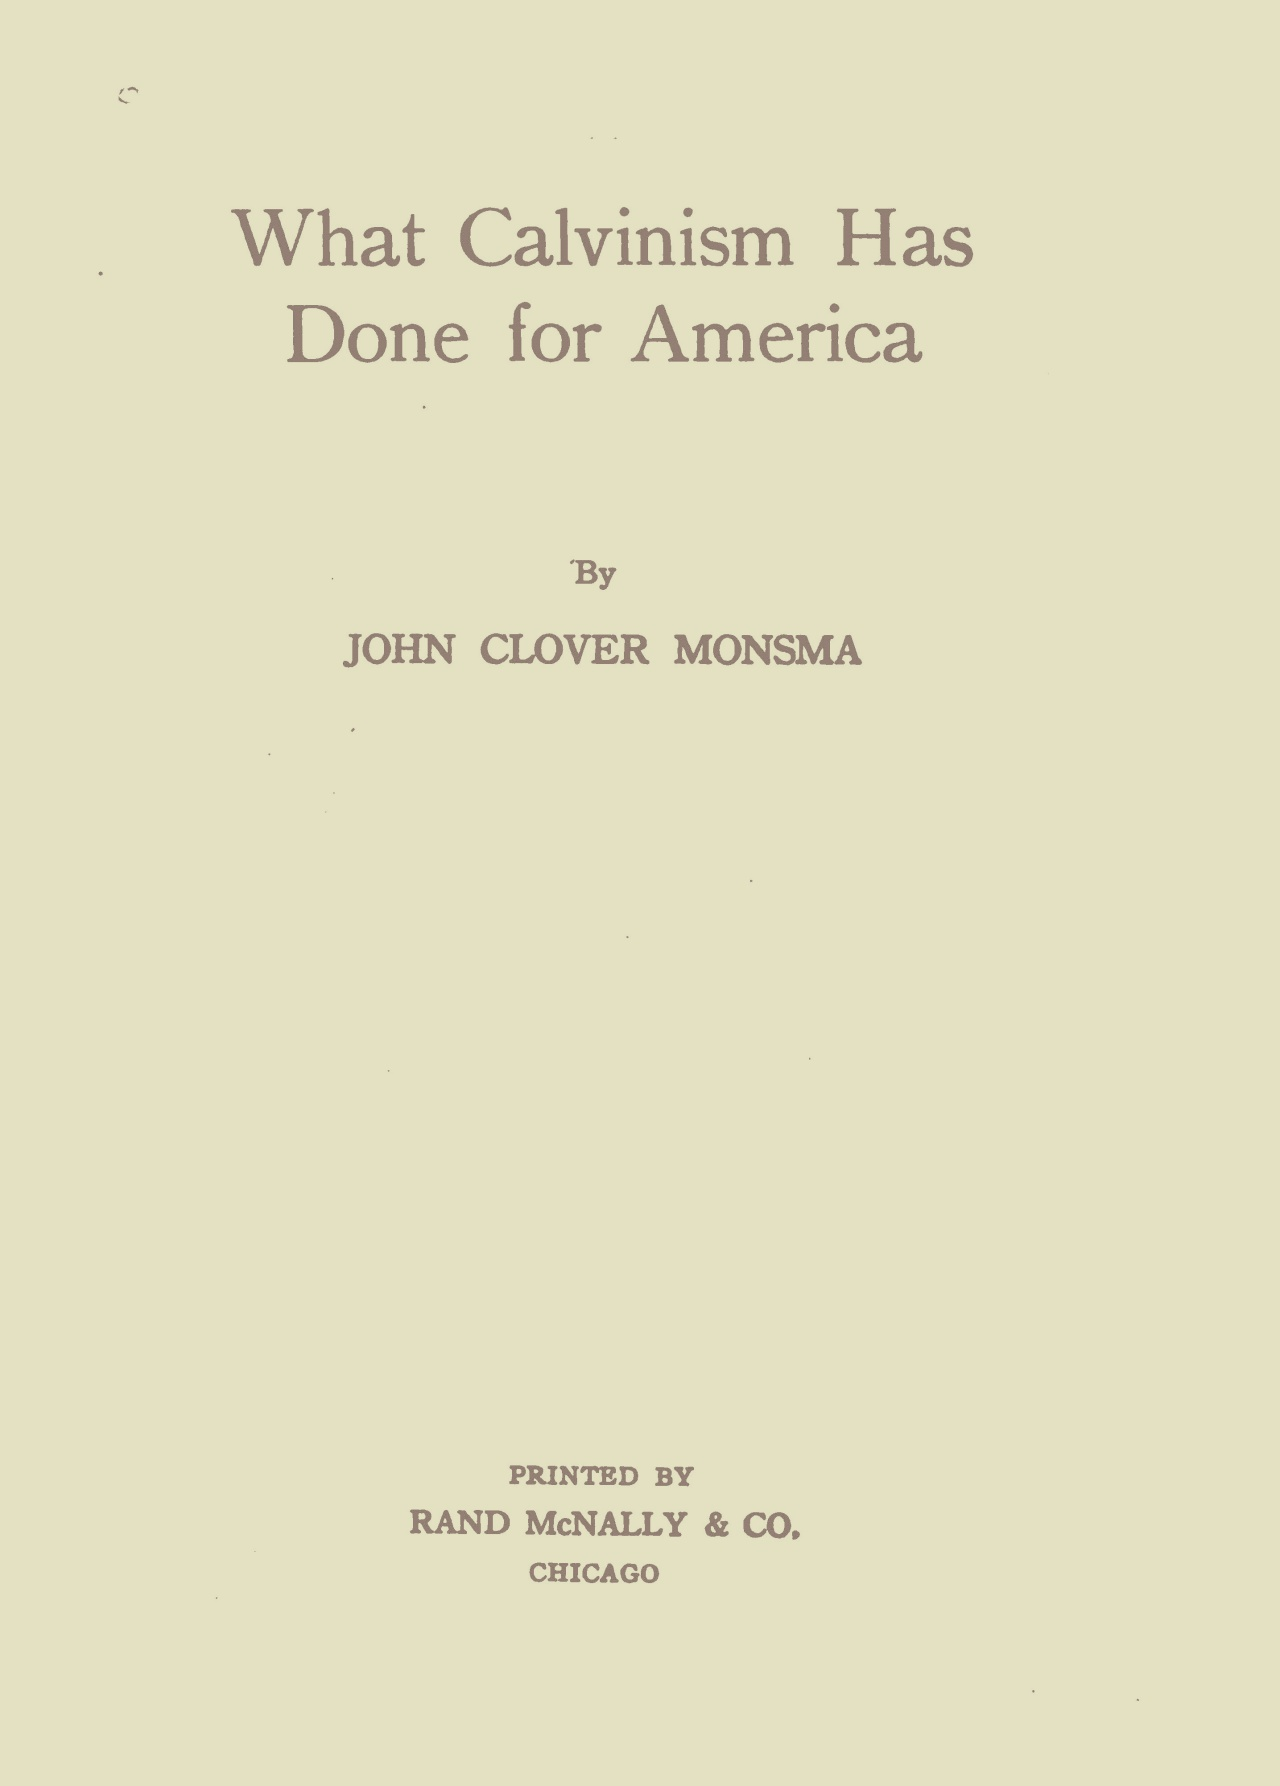 Monsma, John Clover, What Calvinism Has Done For America Title Page.jpg